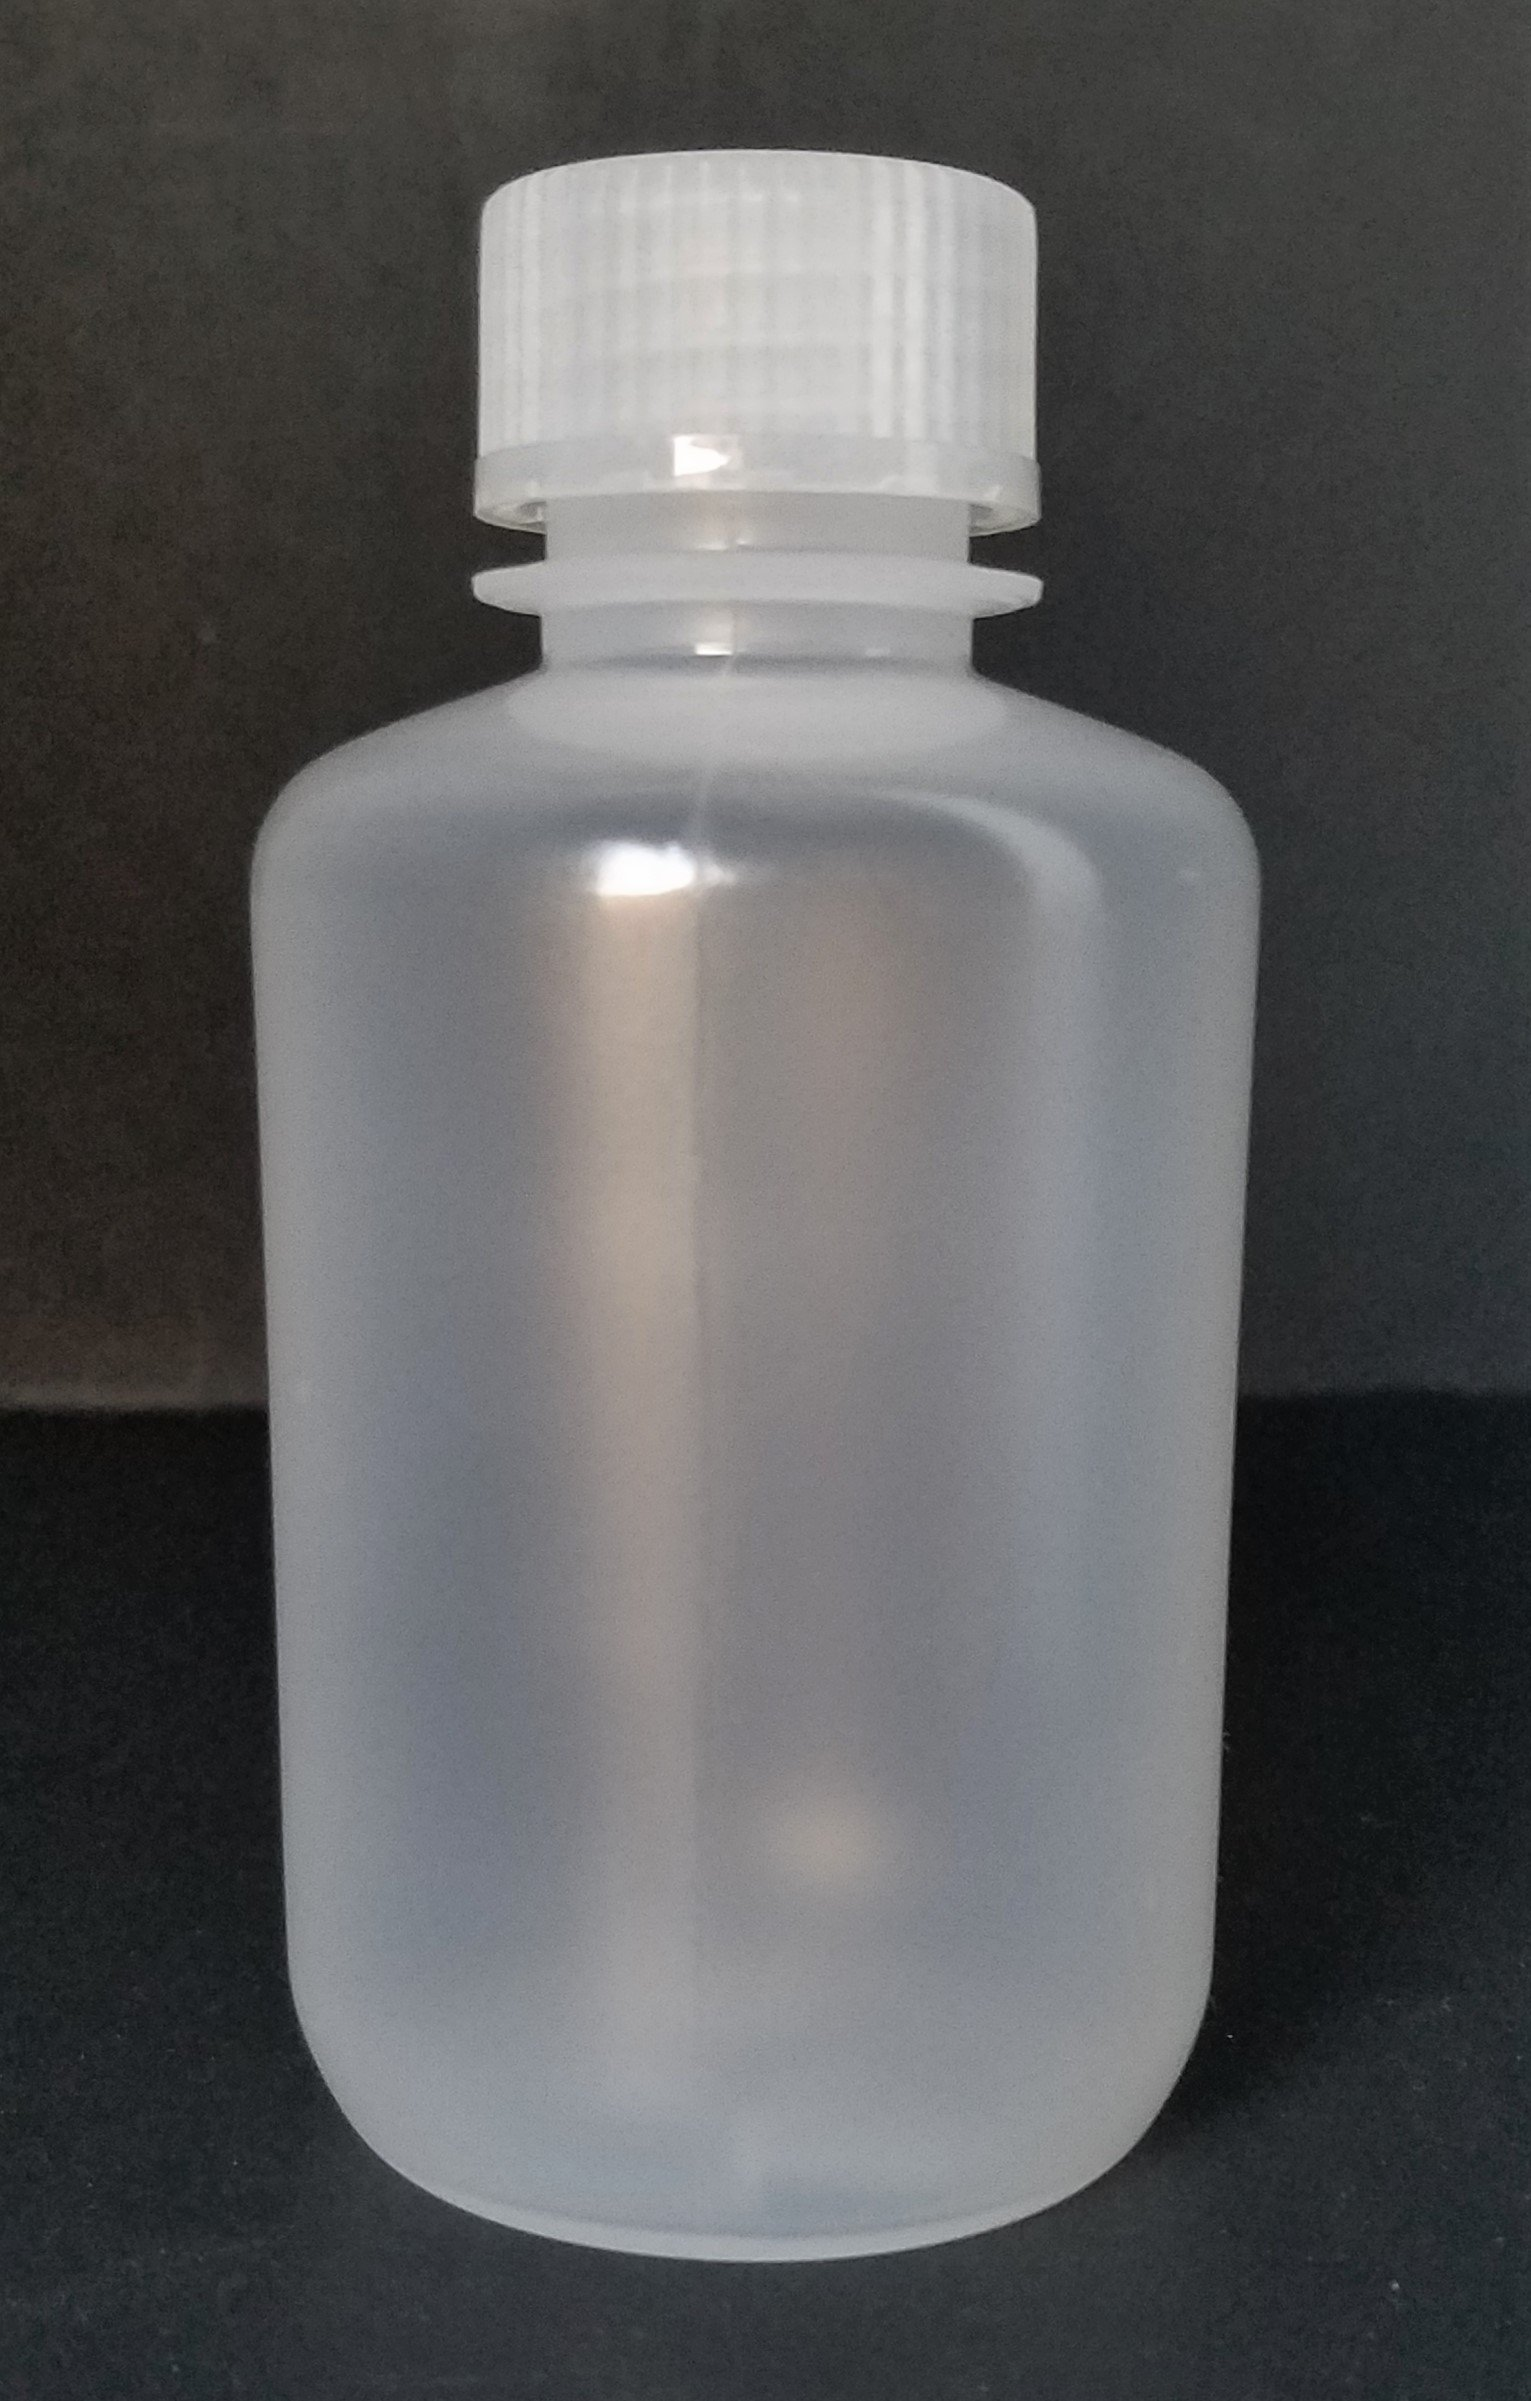 SPL 125 ml Narrow-Mouth Bottles, durable bottles for storing and handling liquid/solid , Polypropylene/Plastic (Pack x 12)